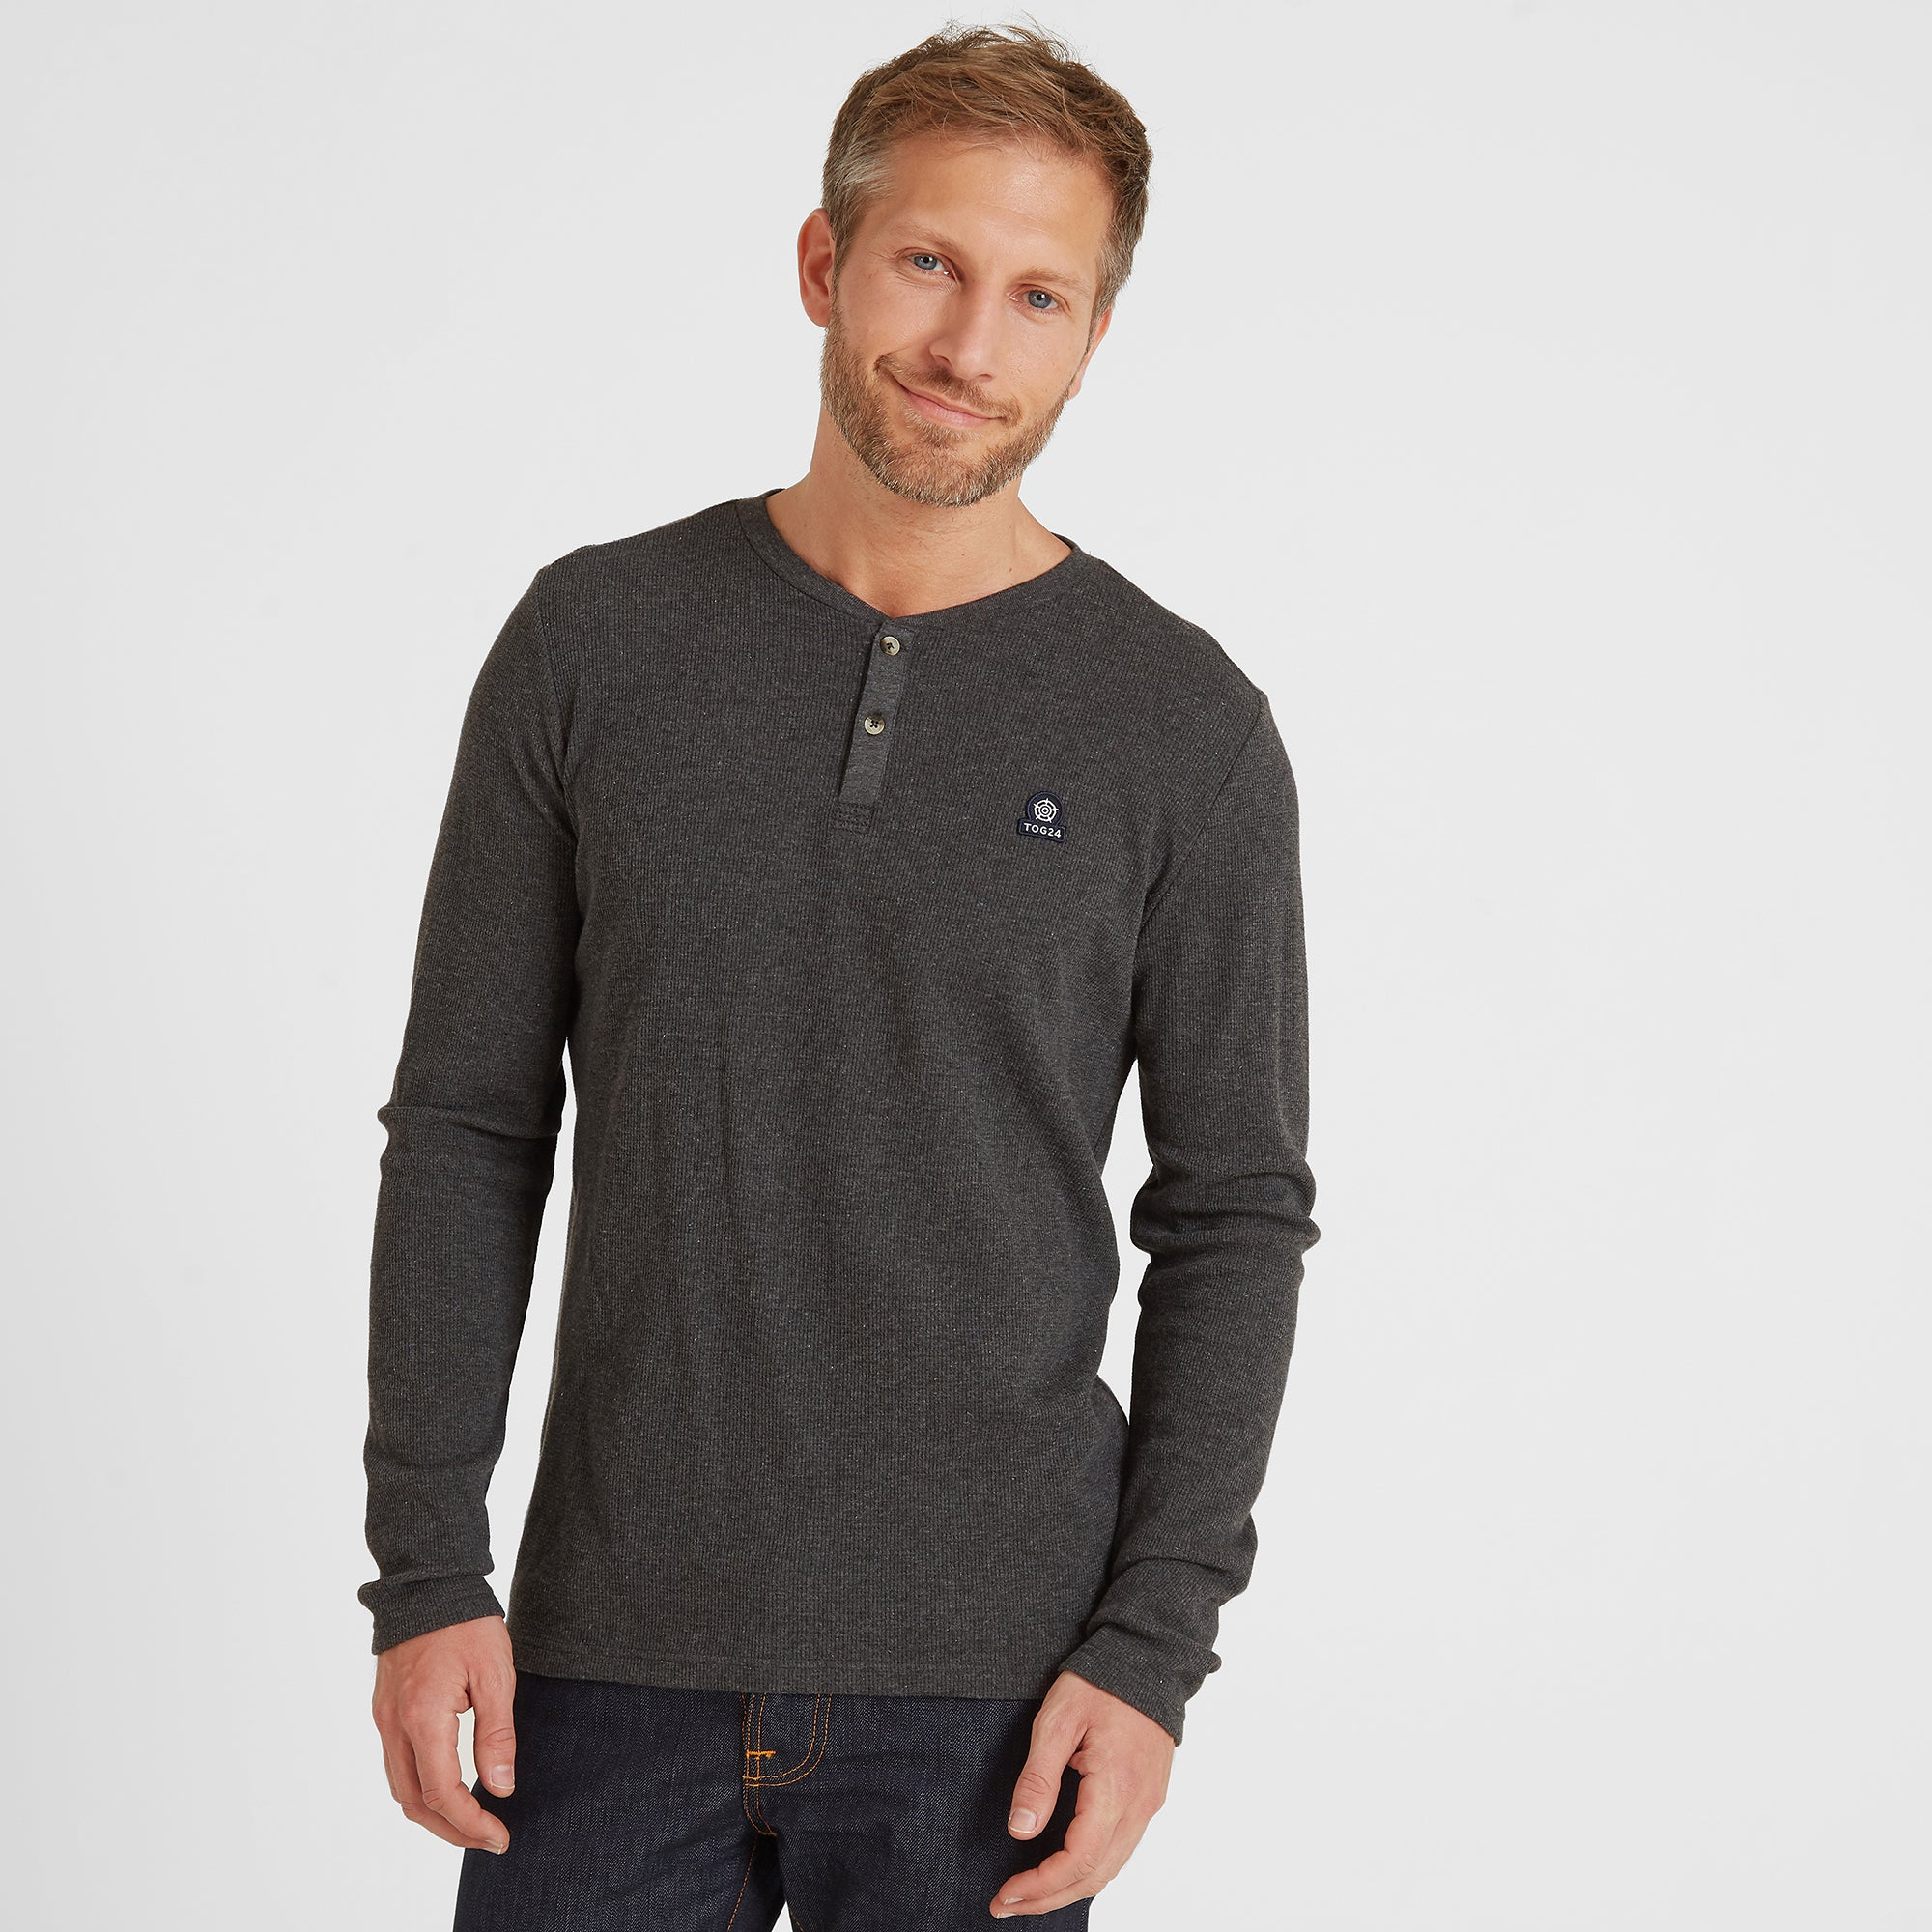 Drewton Mens Grandad Collar T-Shirt - Dark Grey Marl